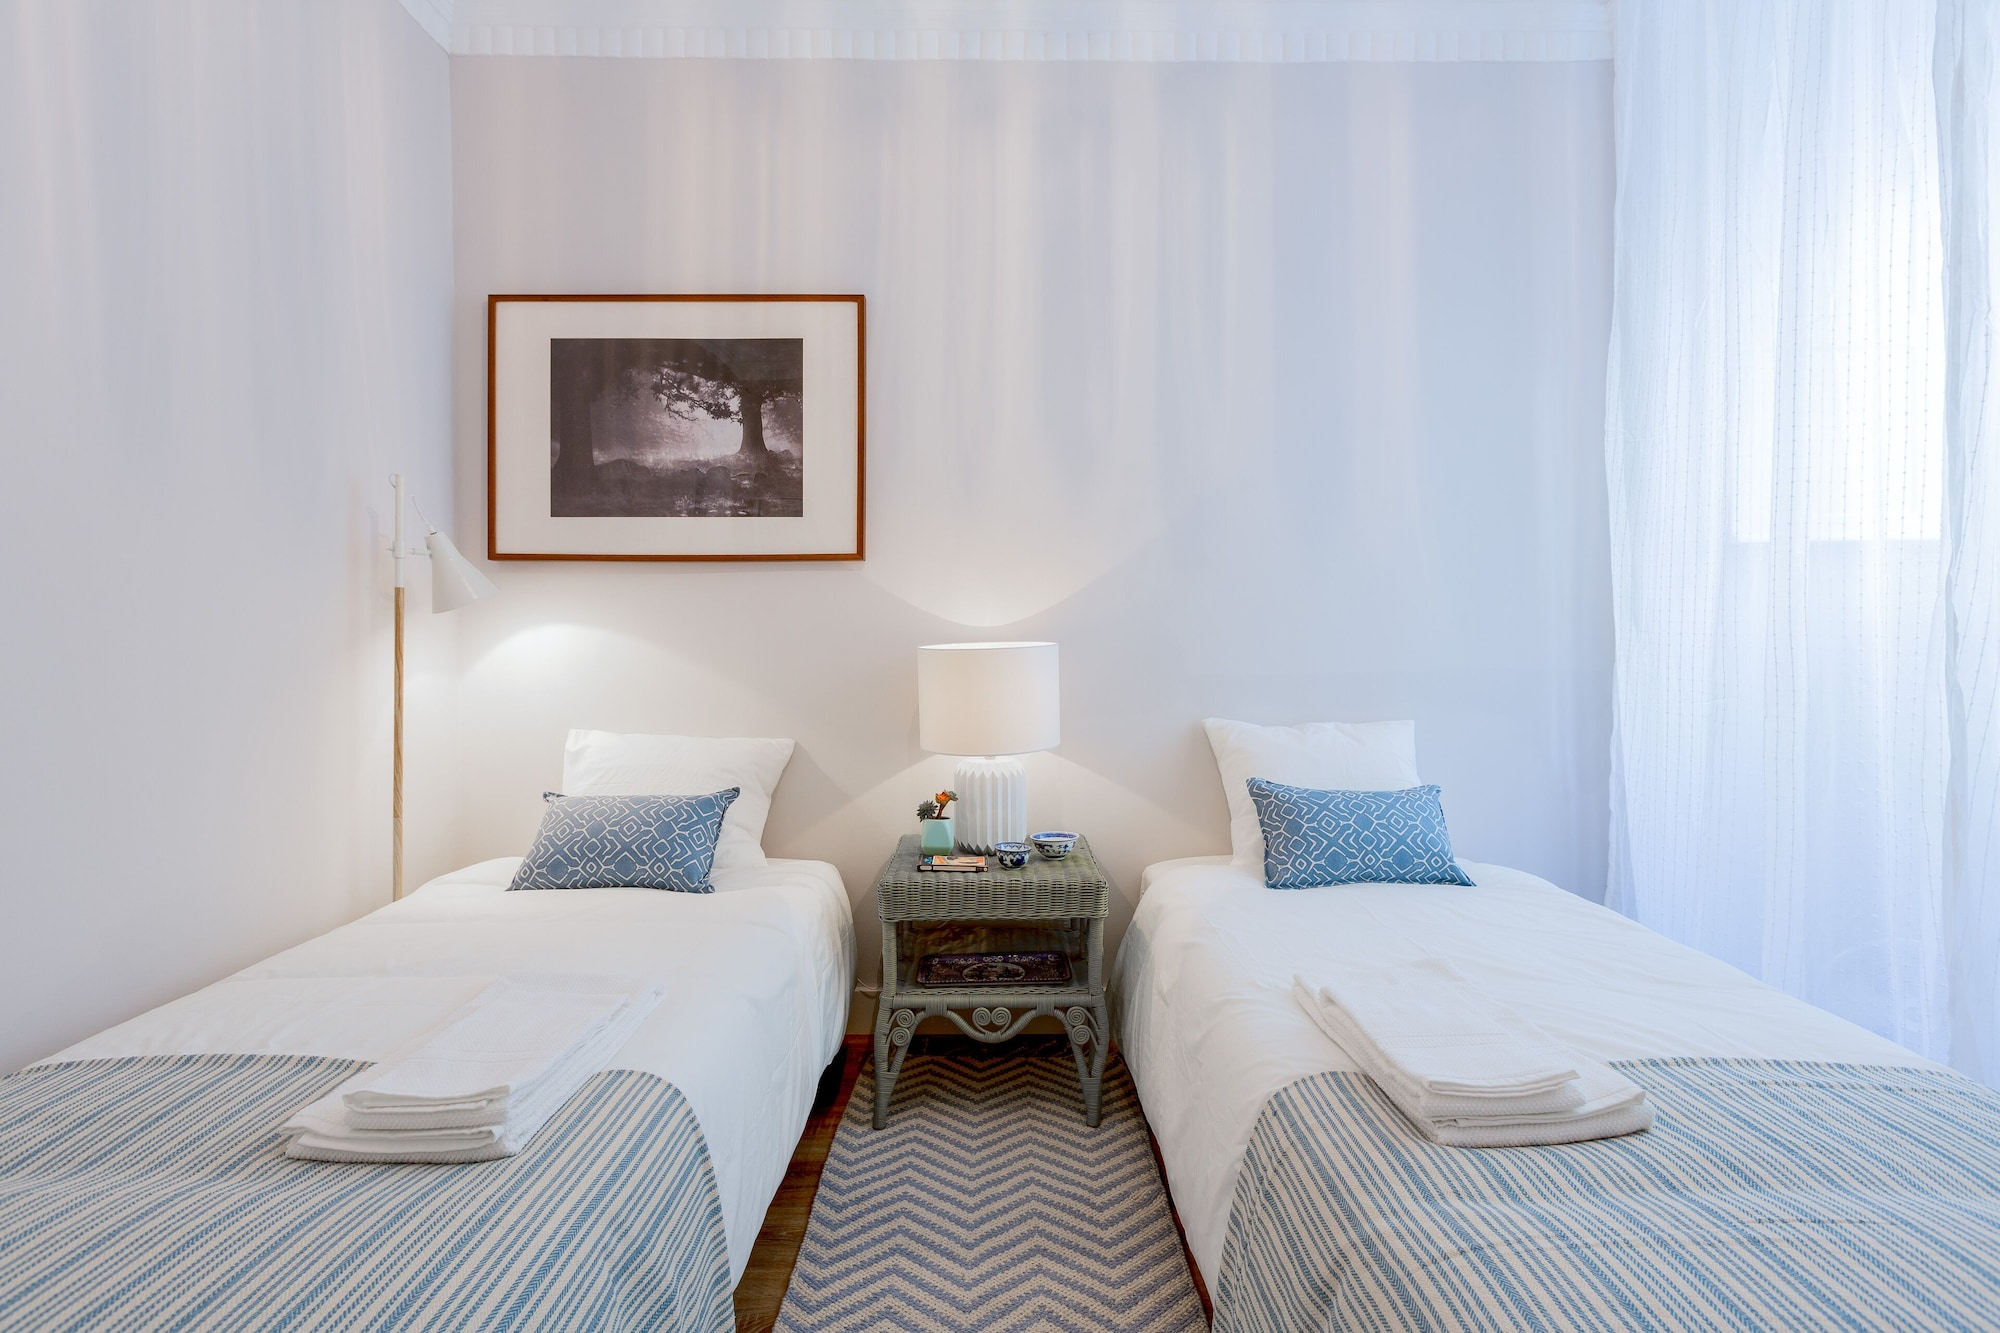 Baixa 2 Bedrooms Apartment with Patio + Free Pick Up By TimeCooler, Lisboa